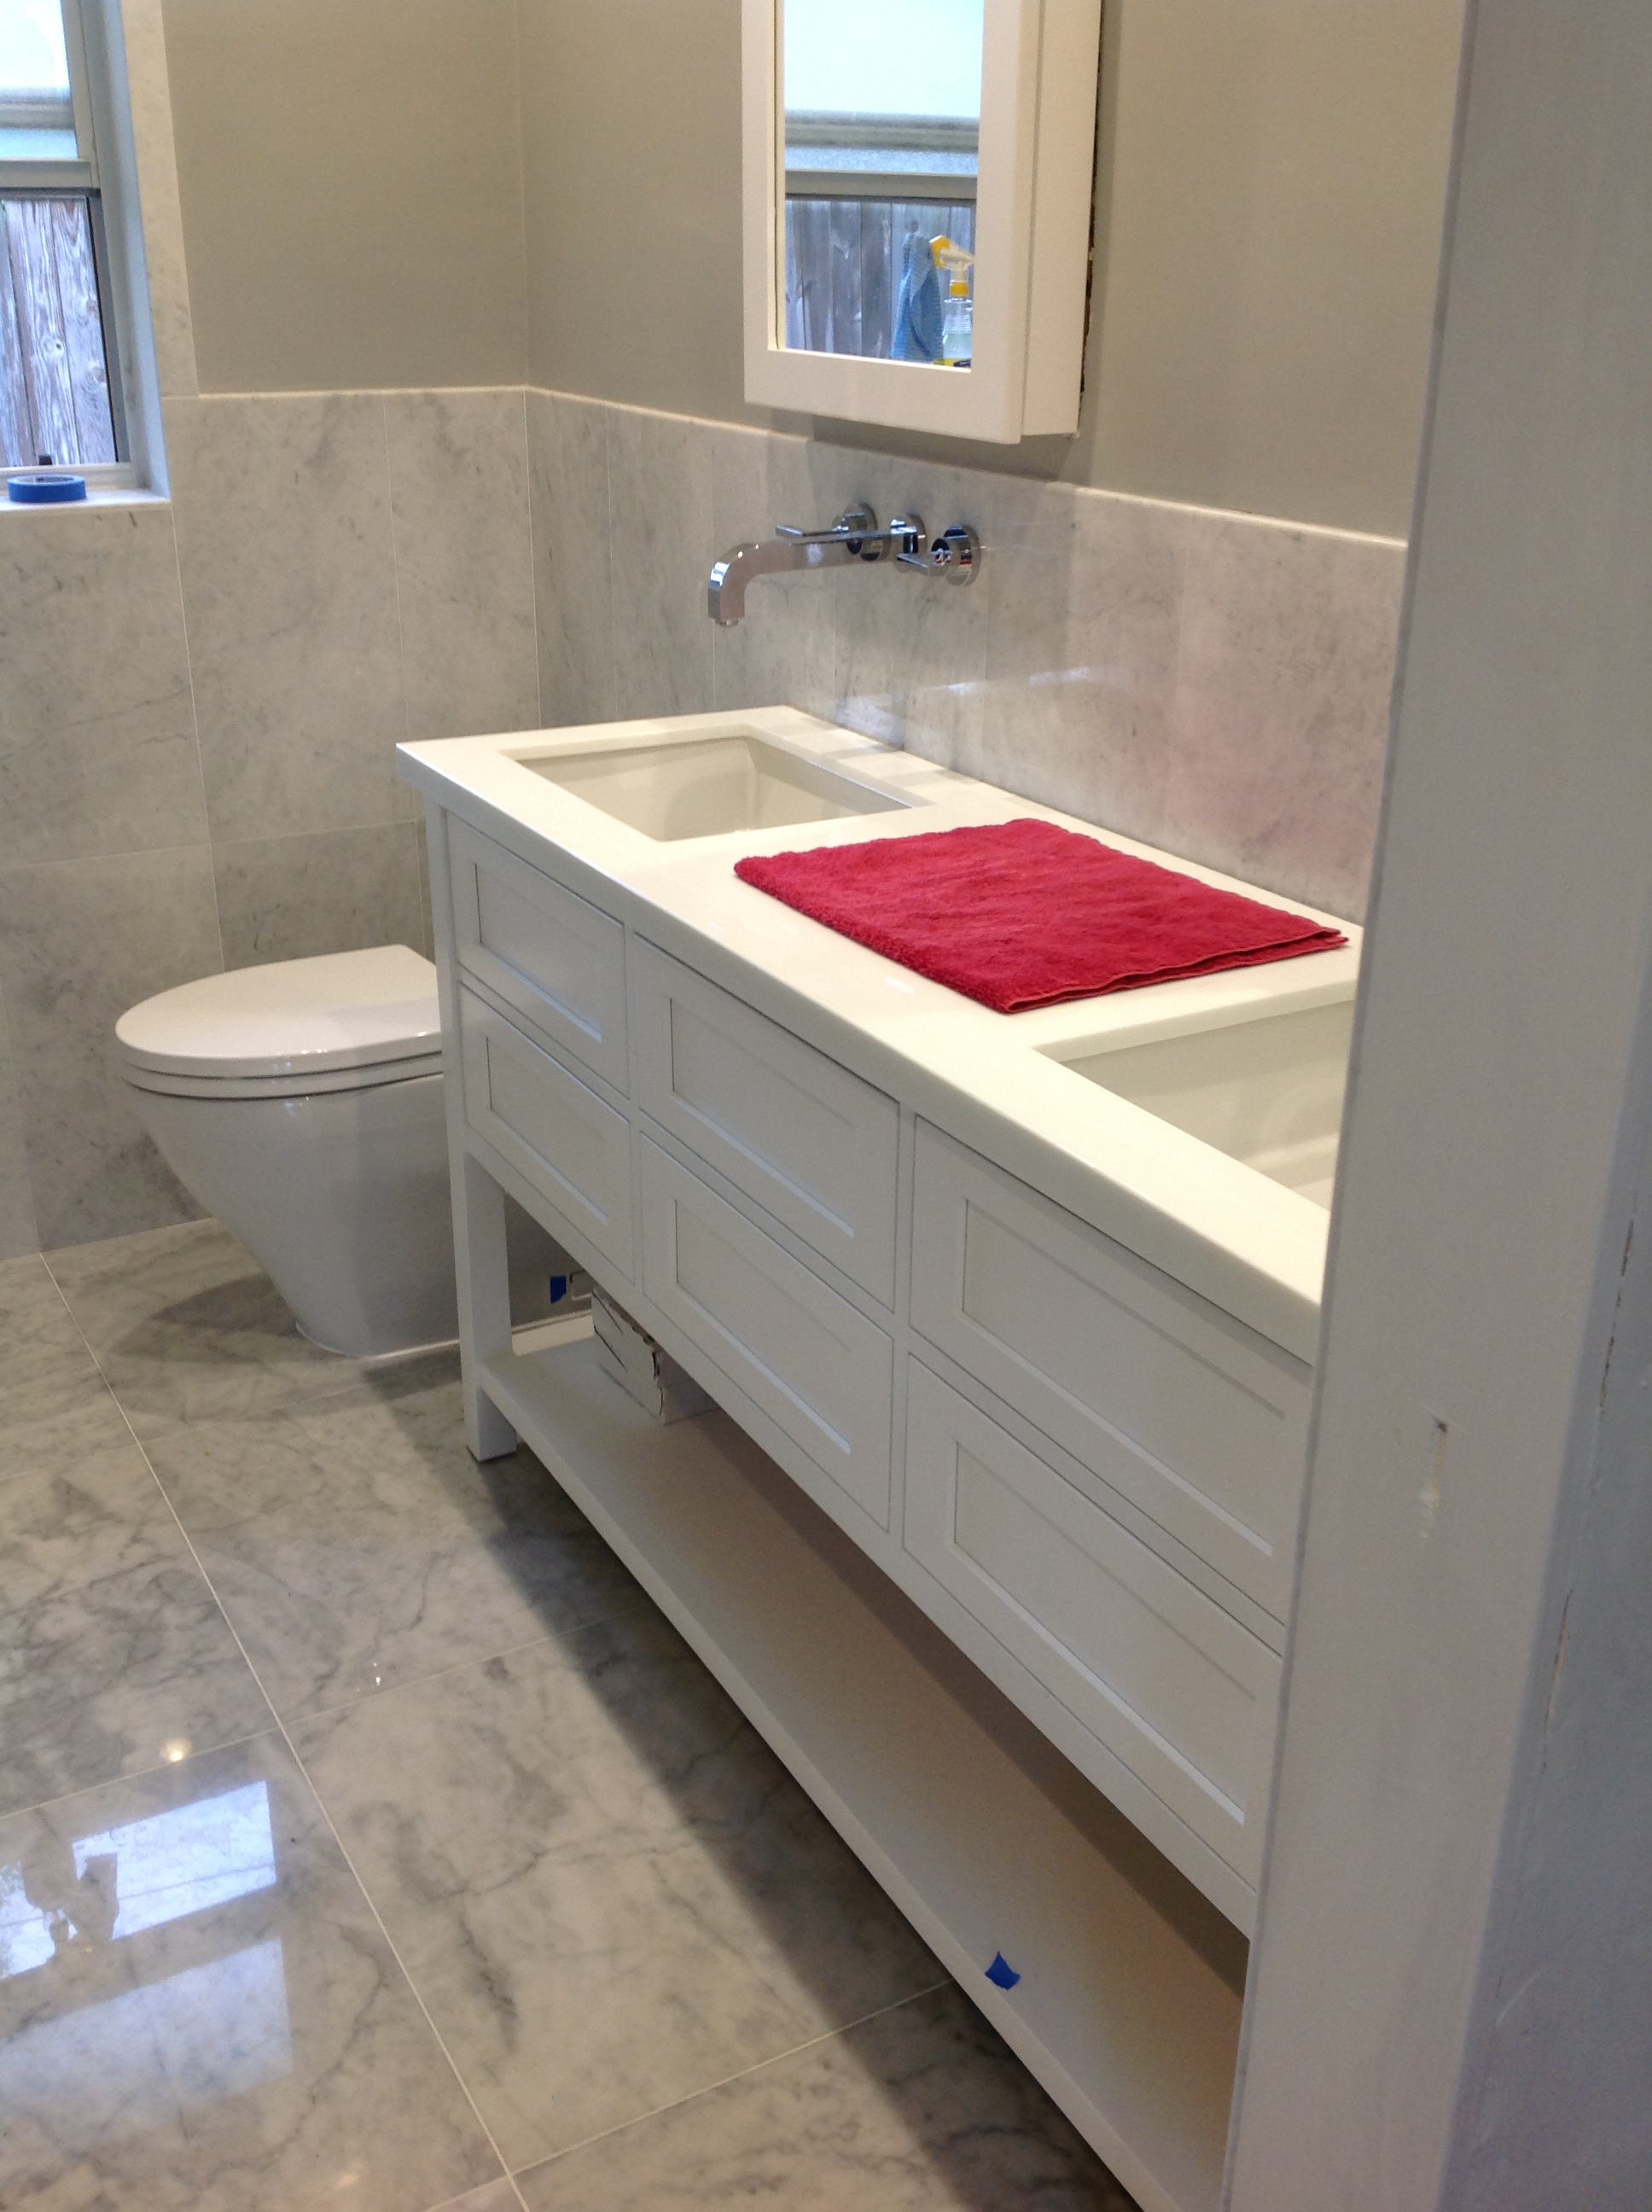 Custom bathroom Cabinets by J&J cabinets of Miami